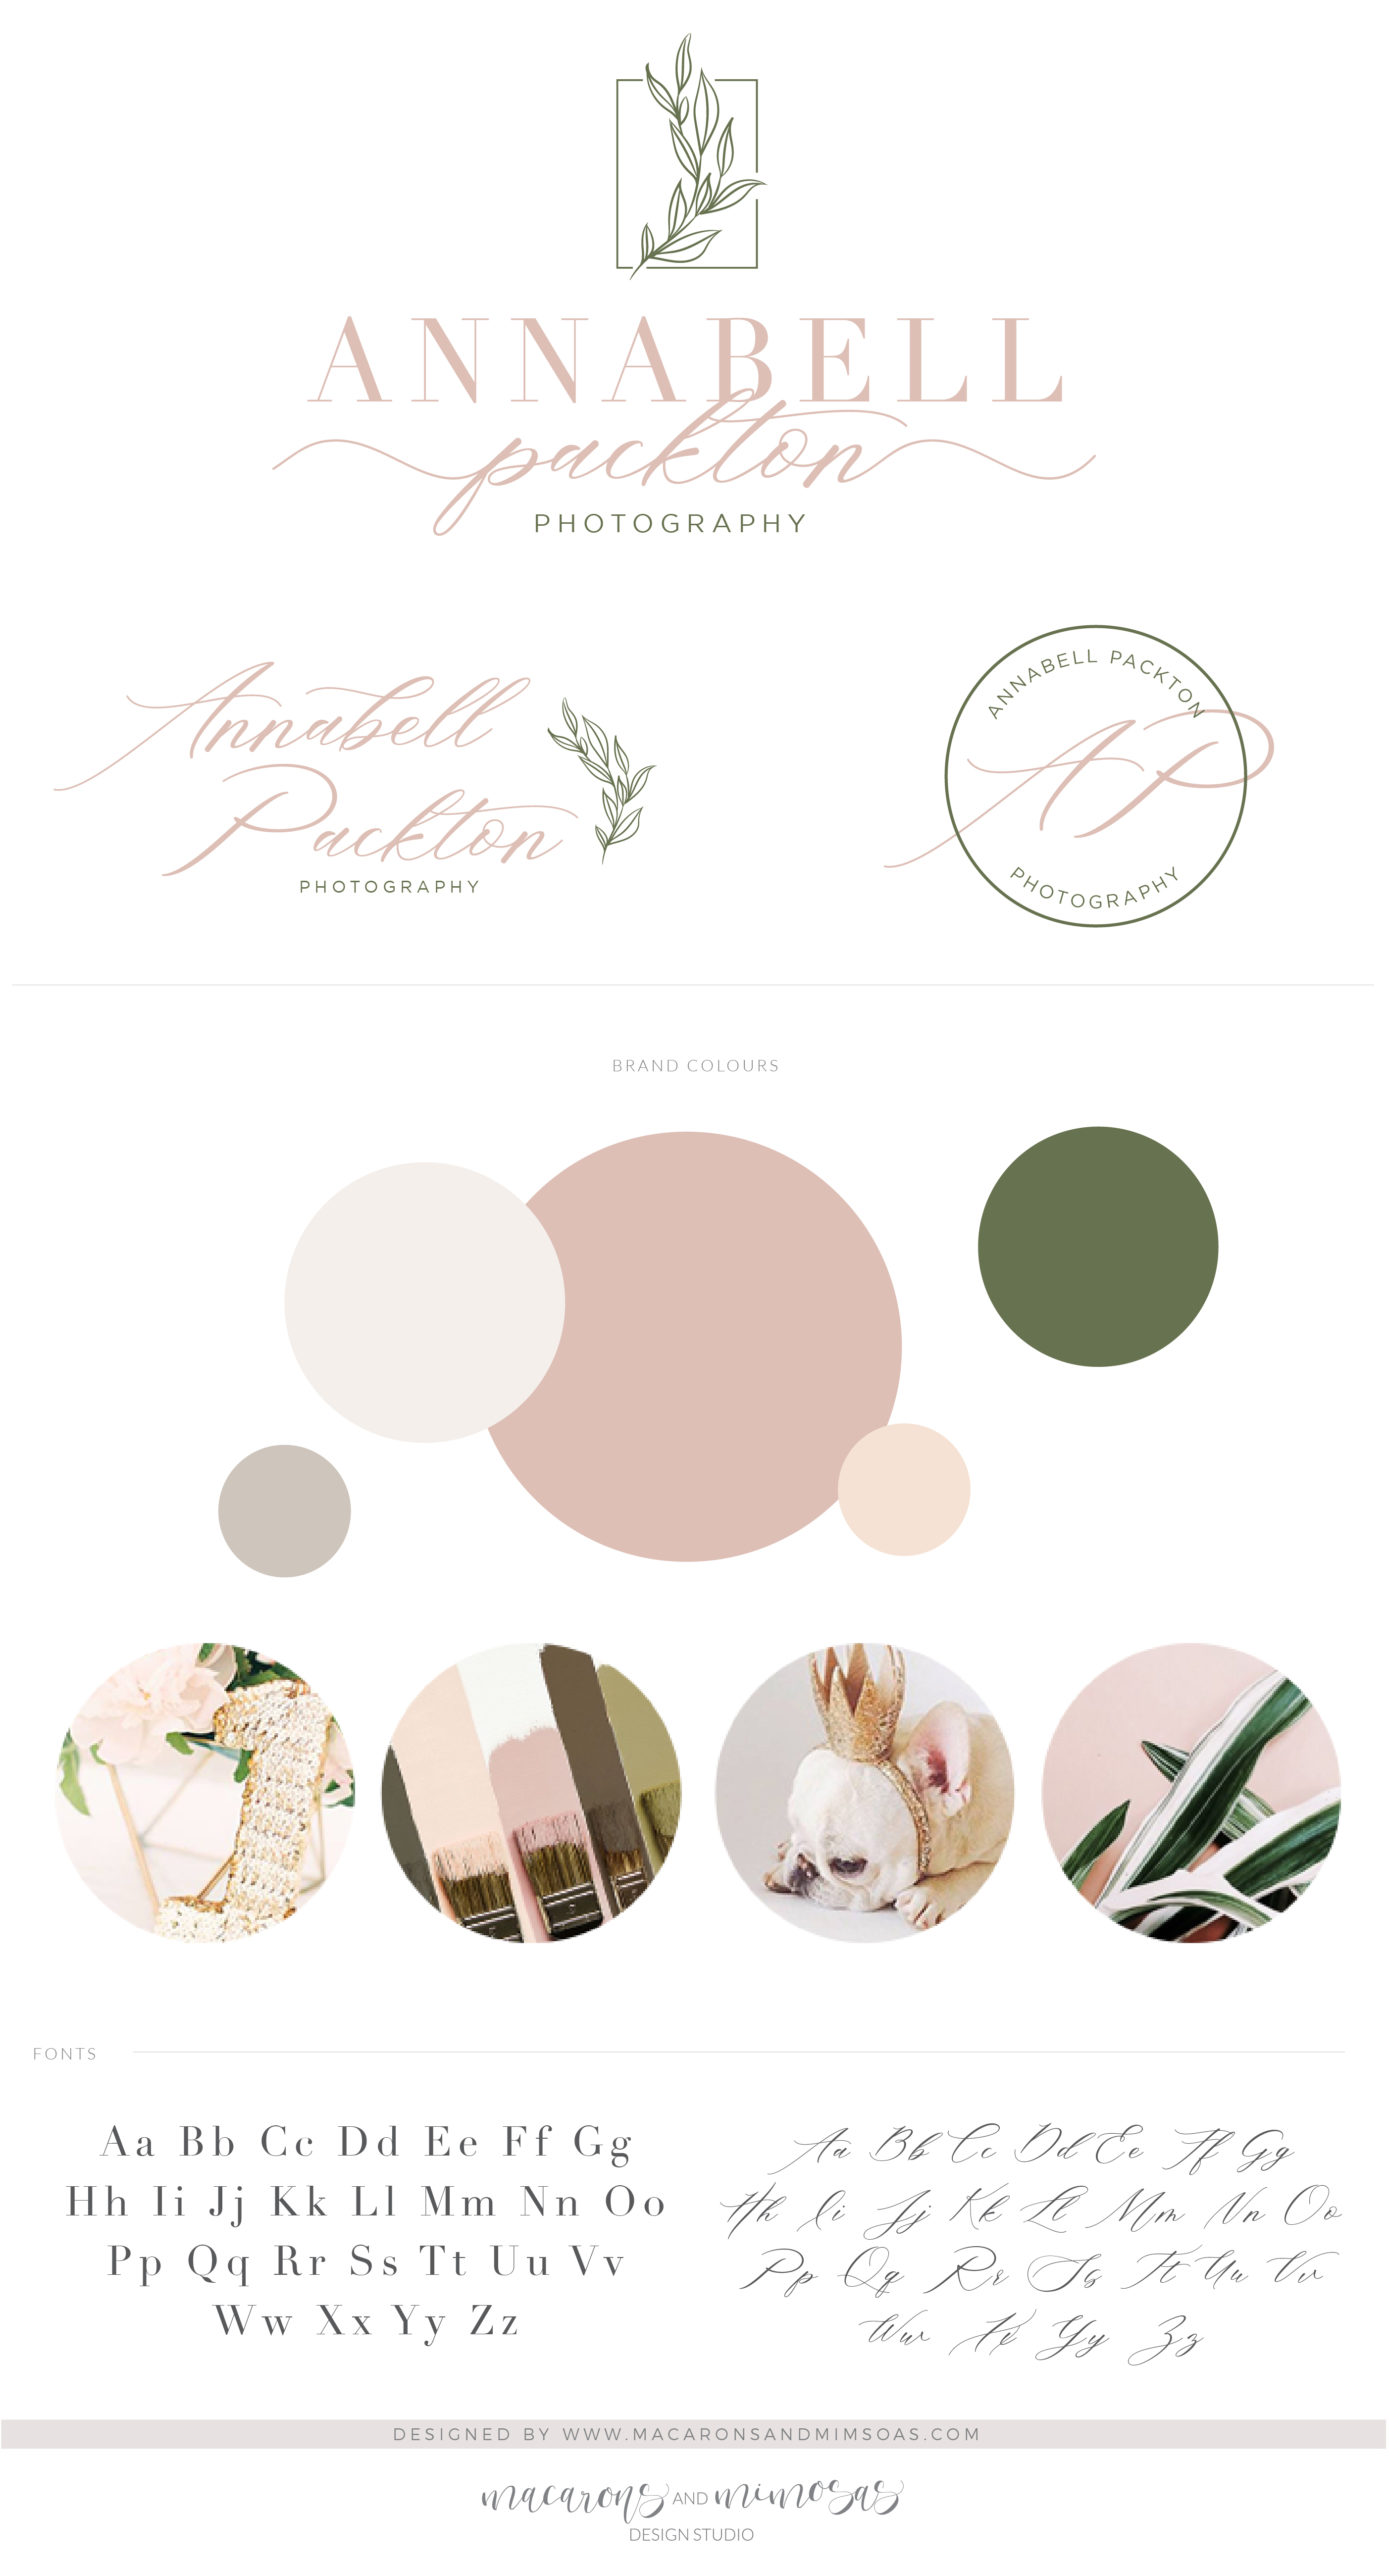 Leaf Logo Branding Kit Design, Floral Photography Boutique Eucalyptus Wreath Branch Premade Logo Watermark Package Greenery Wedding Logo